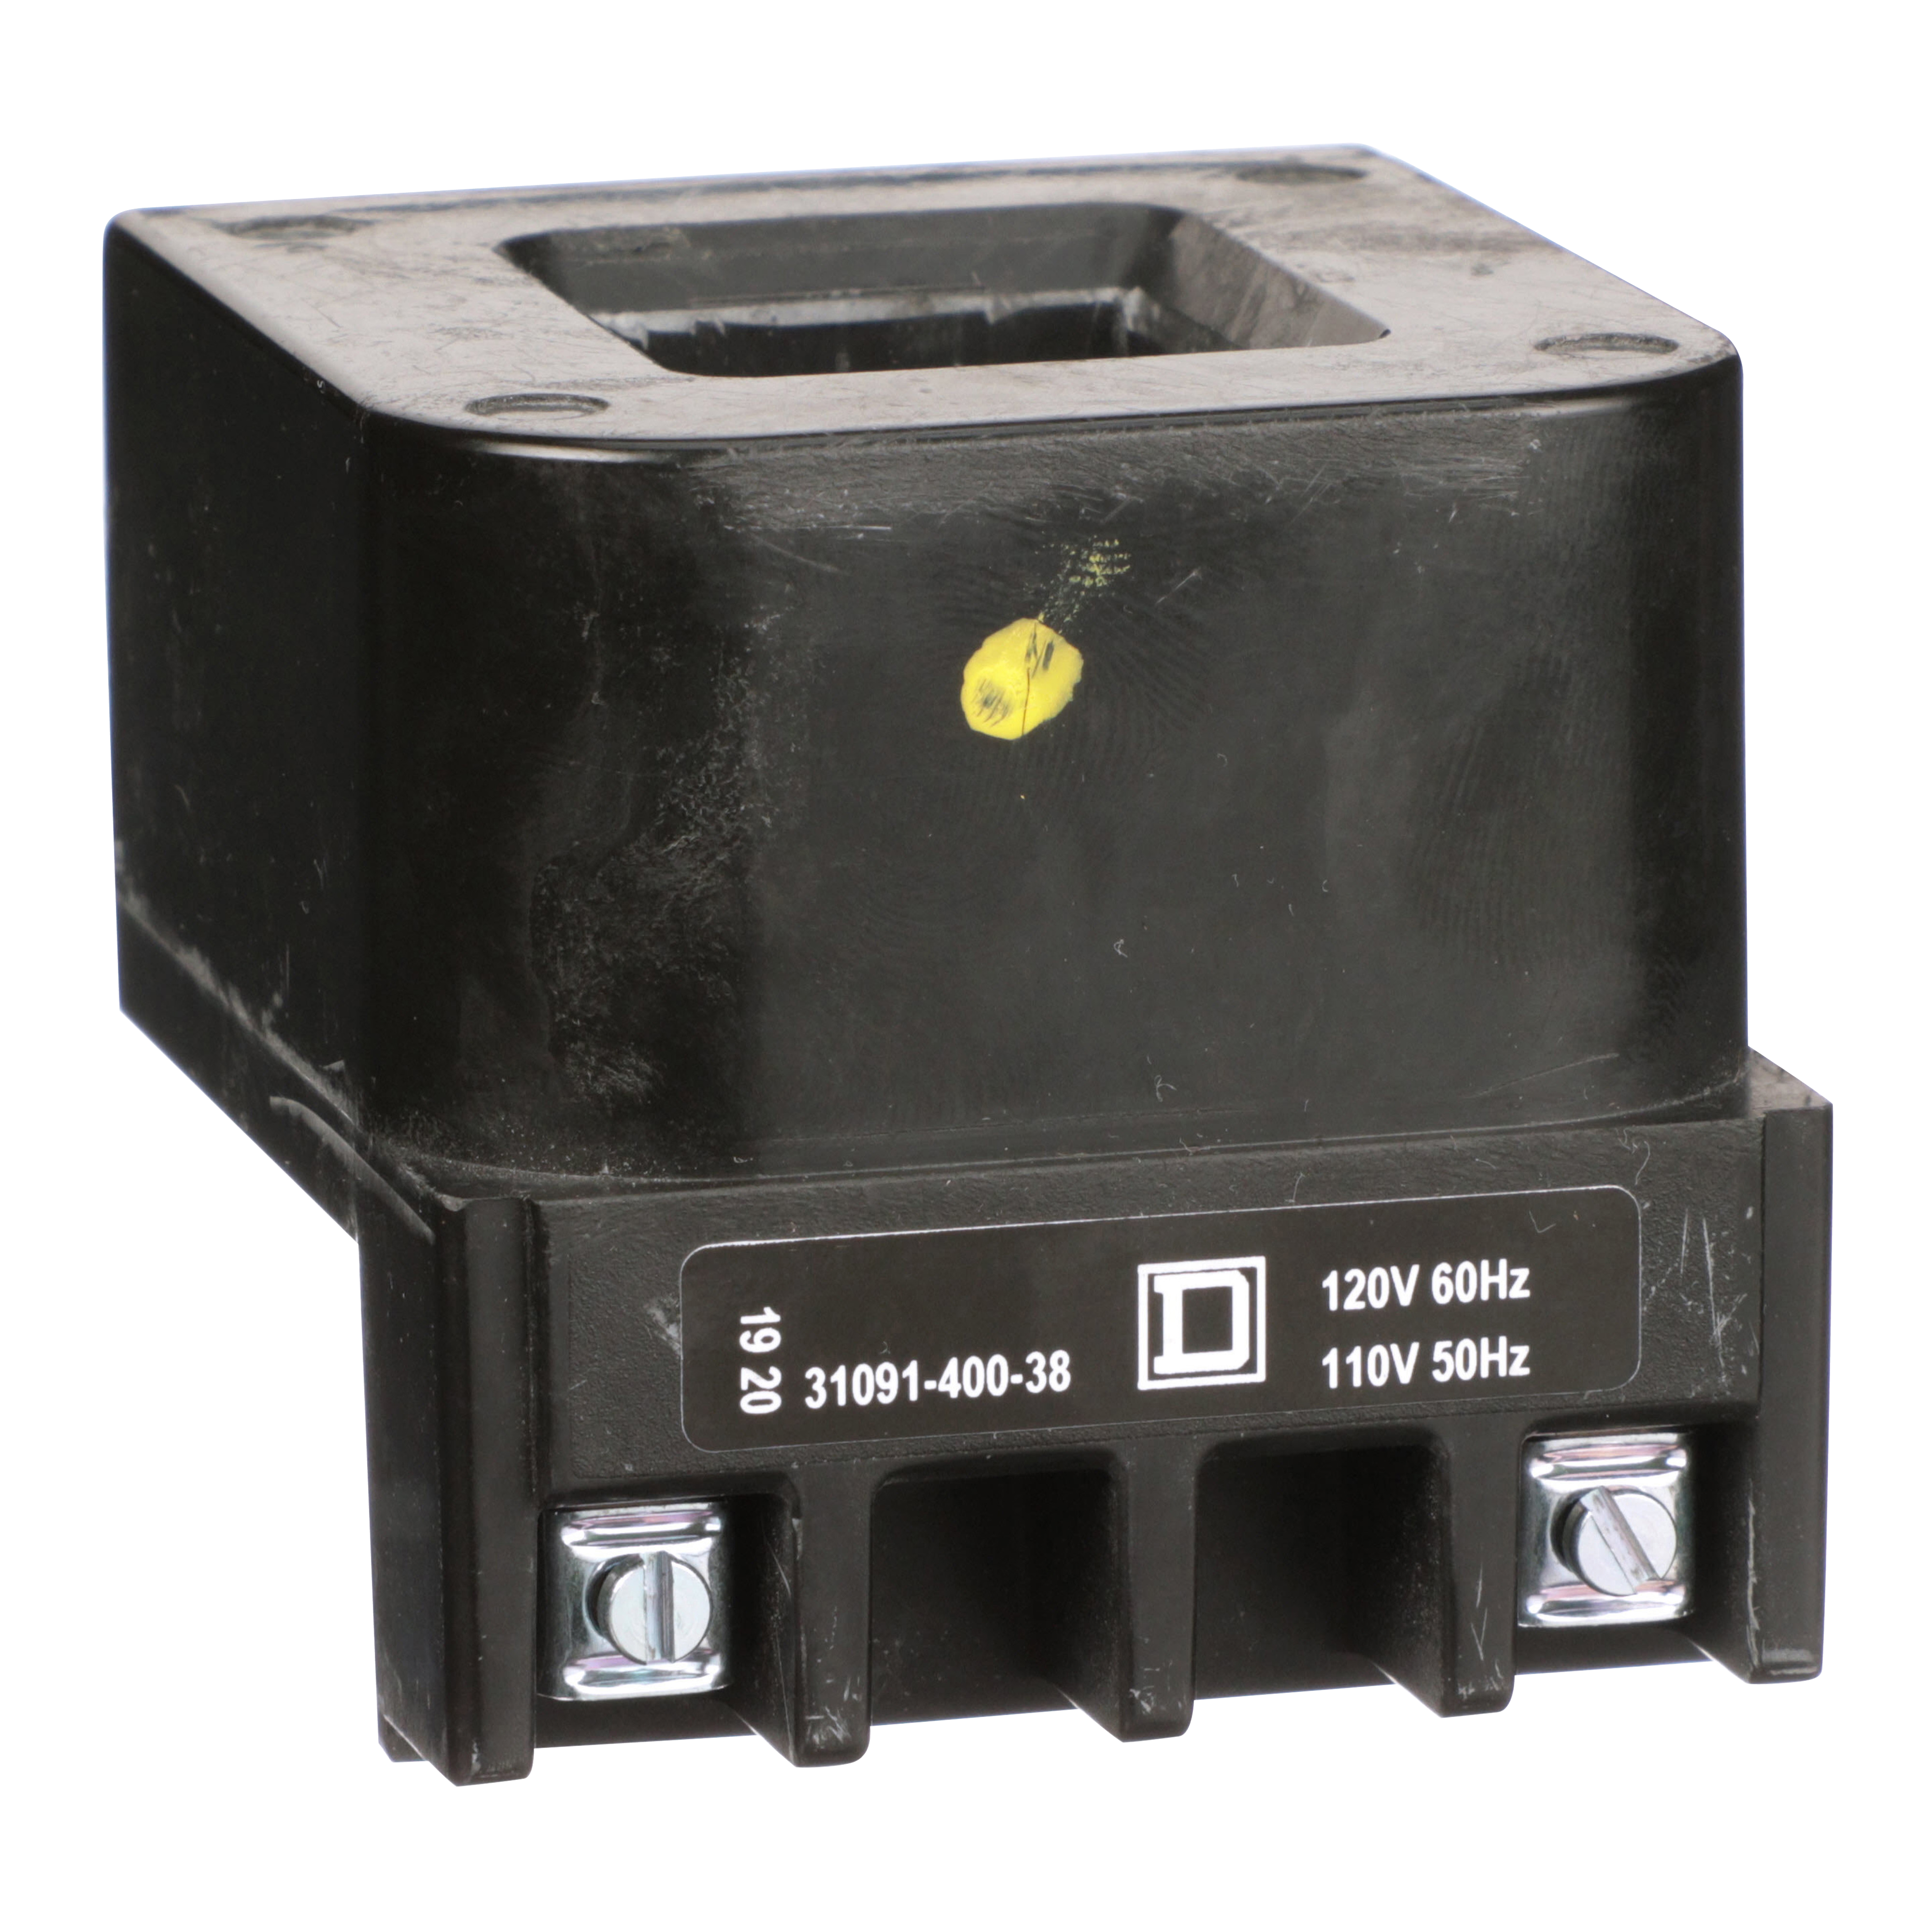 SQUARE D 3109140038 : CONTACTOR+STARTER COIL 120VAC